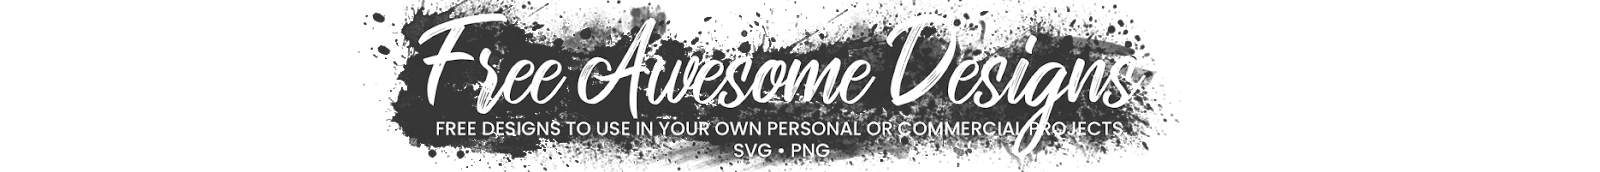 Free Awesome Designs